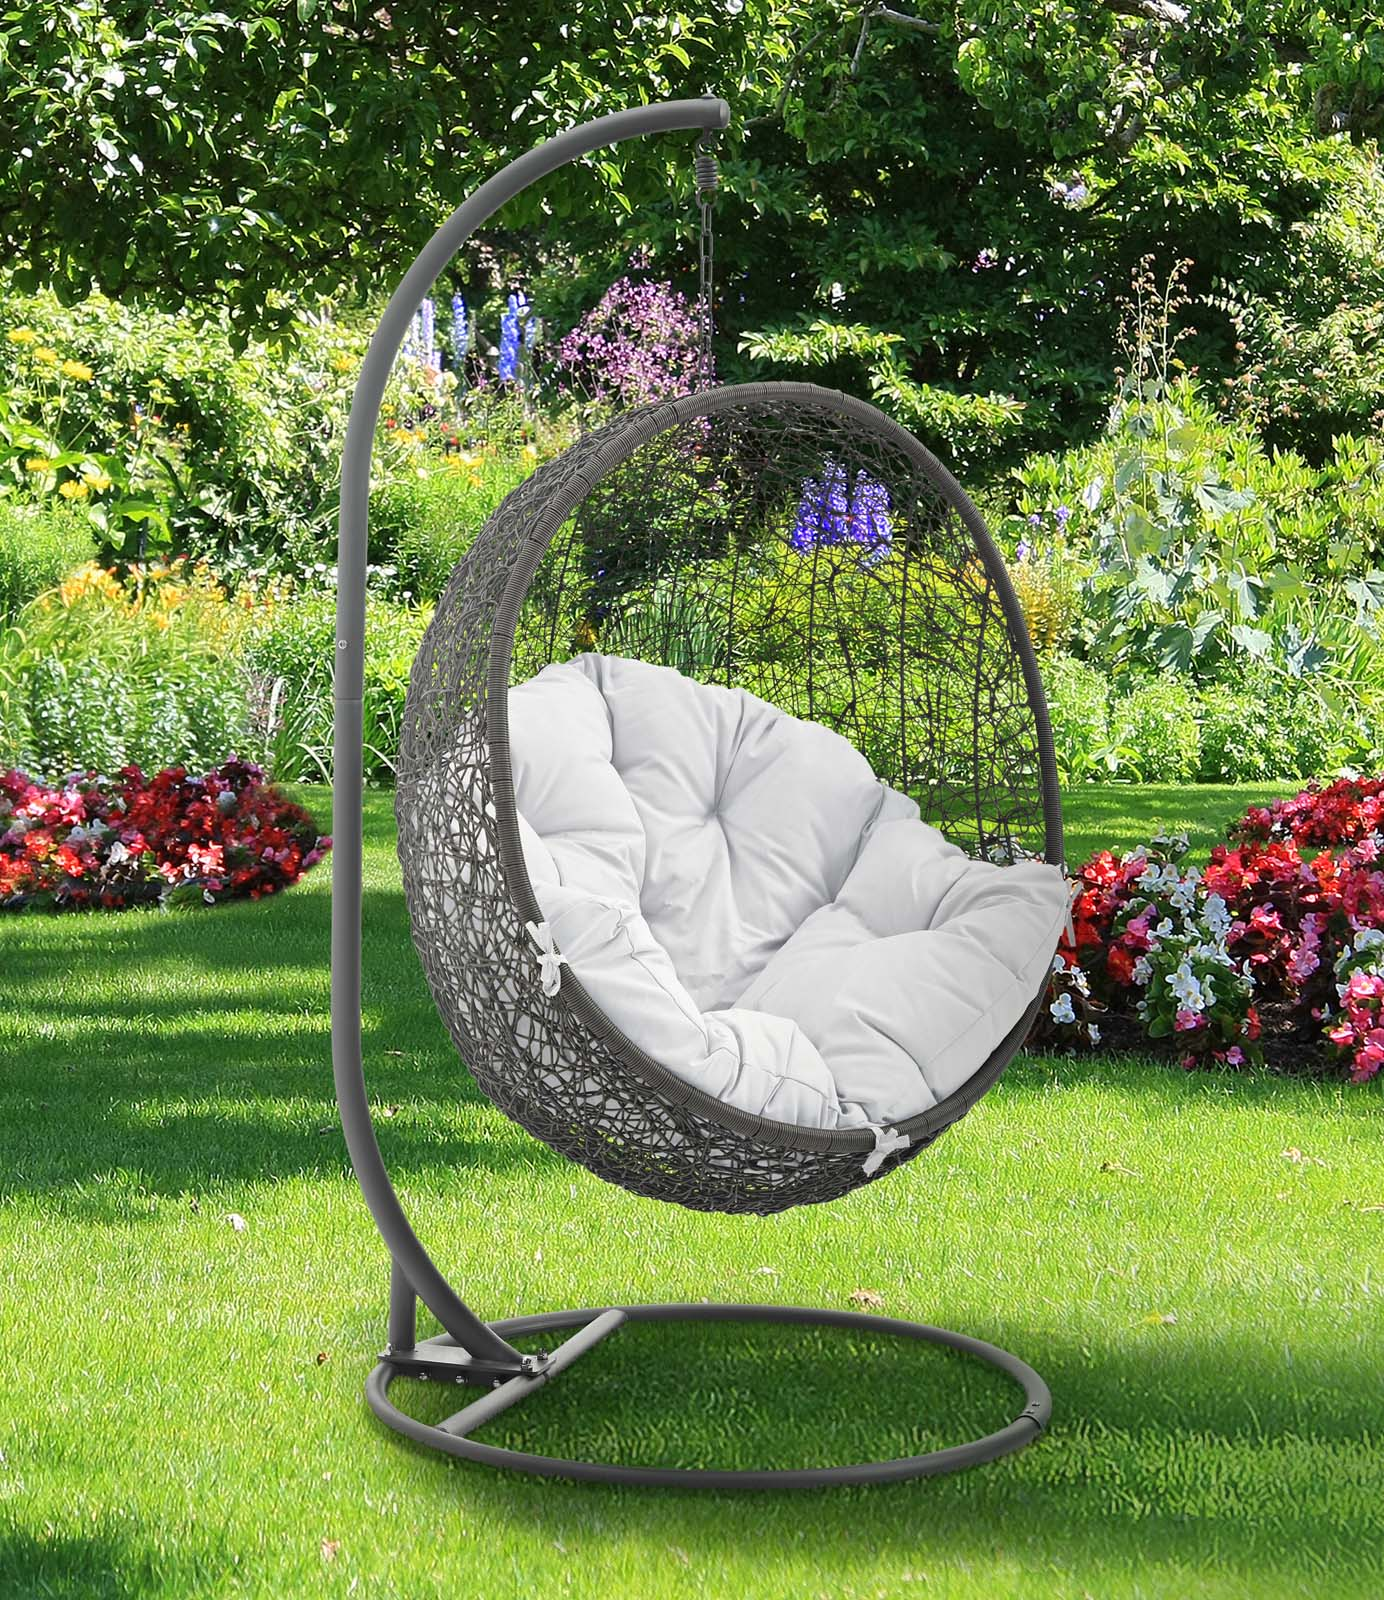 Hide Outdoor Patio Swing Chair With Stand Gray White by Modway